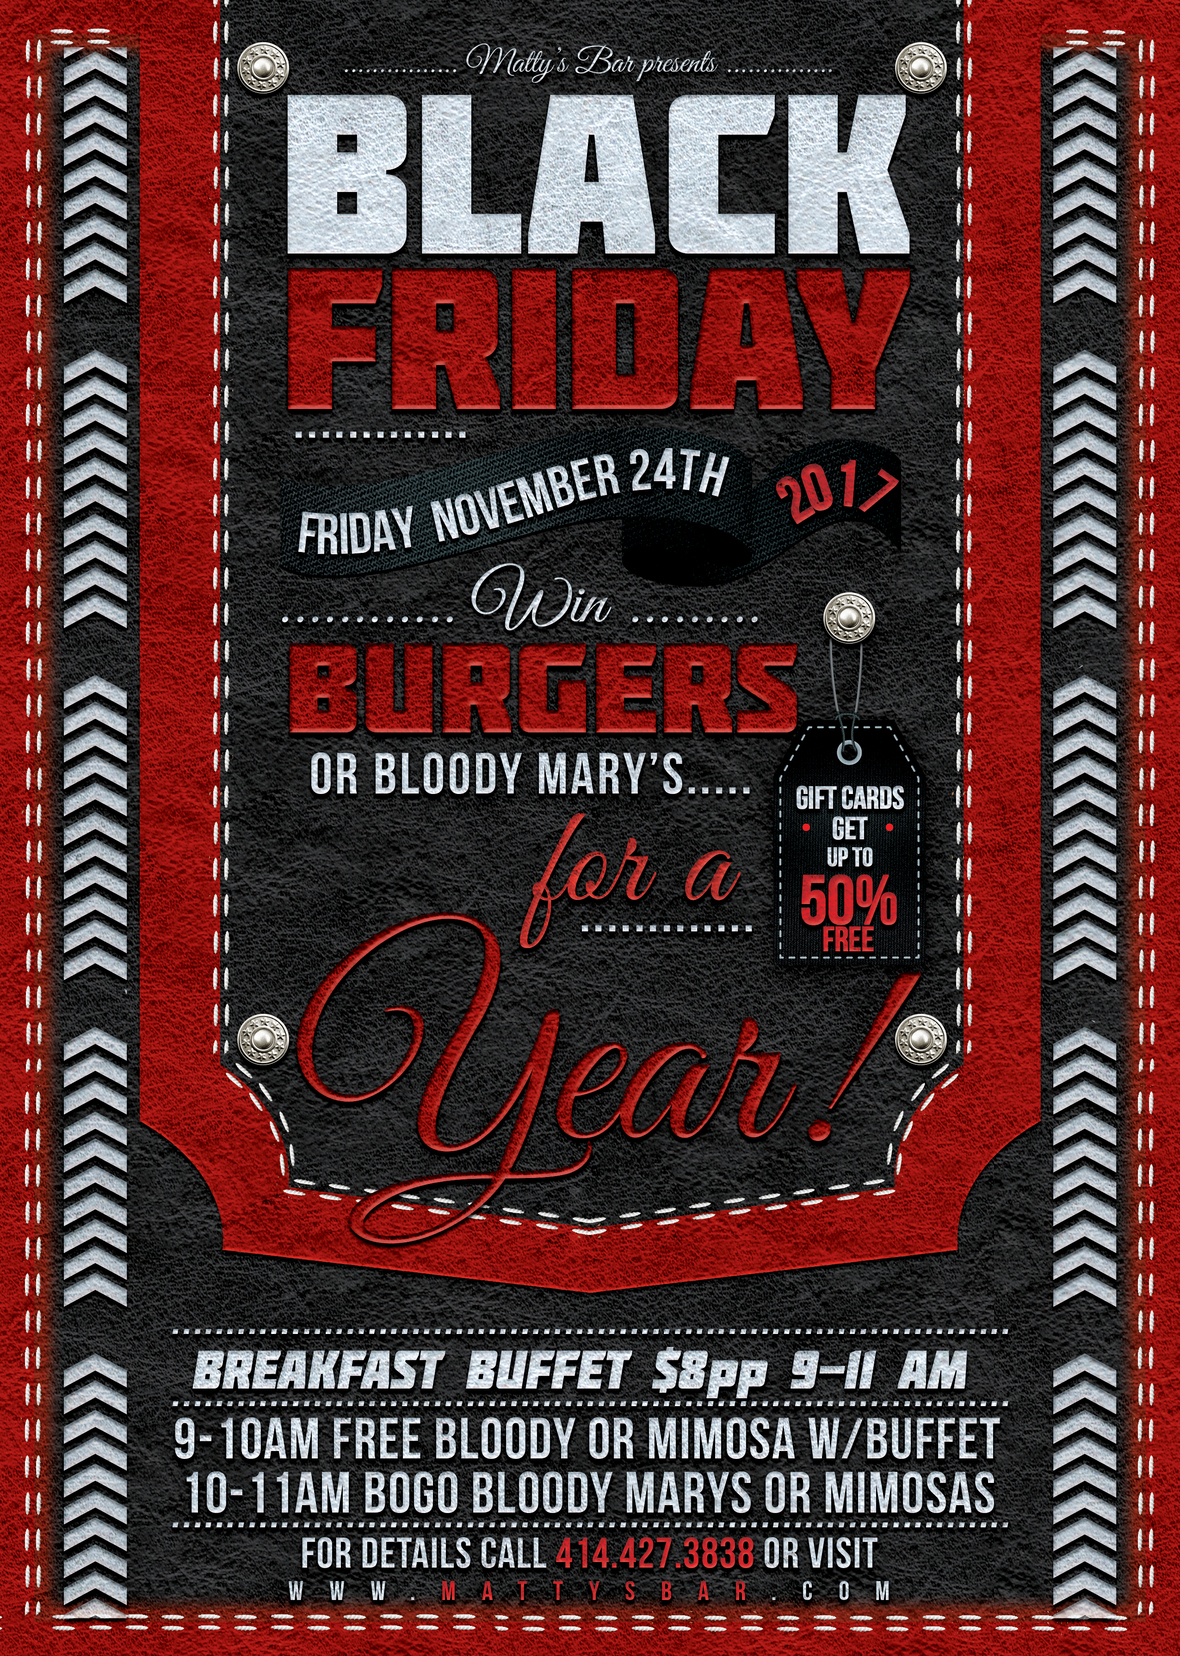 Black Friday Flyer Template